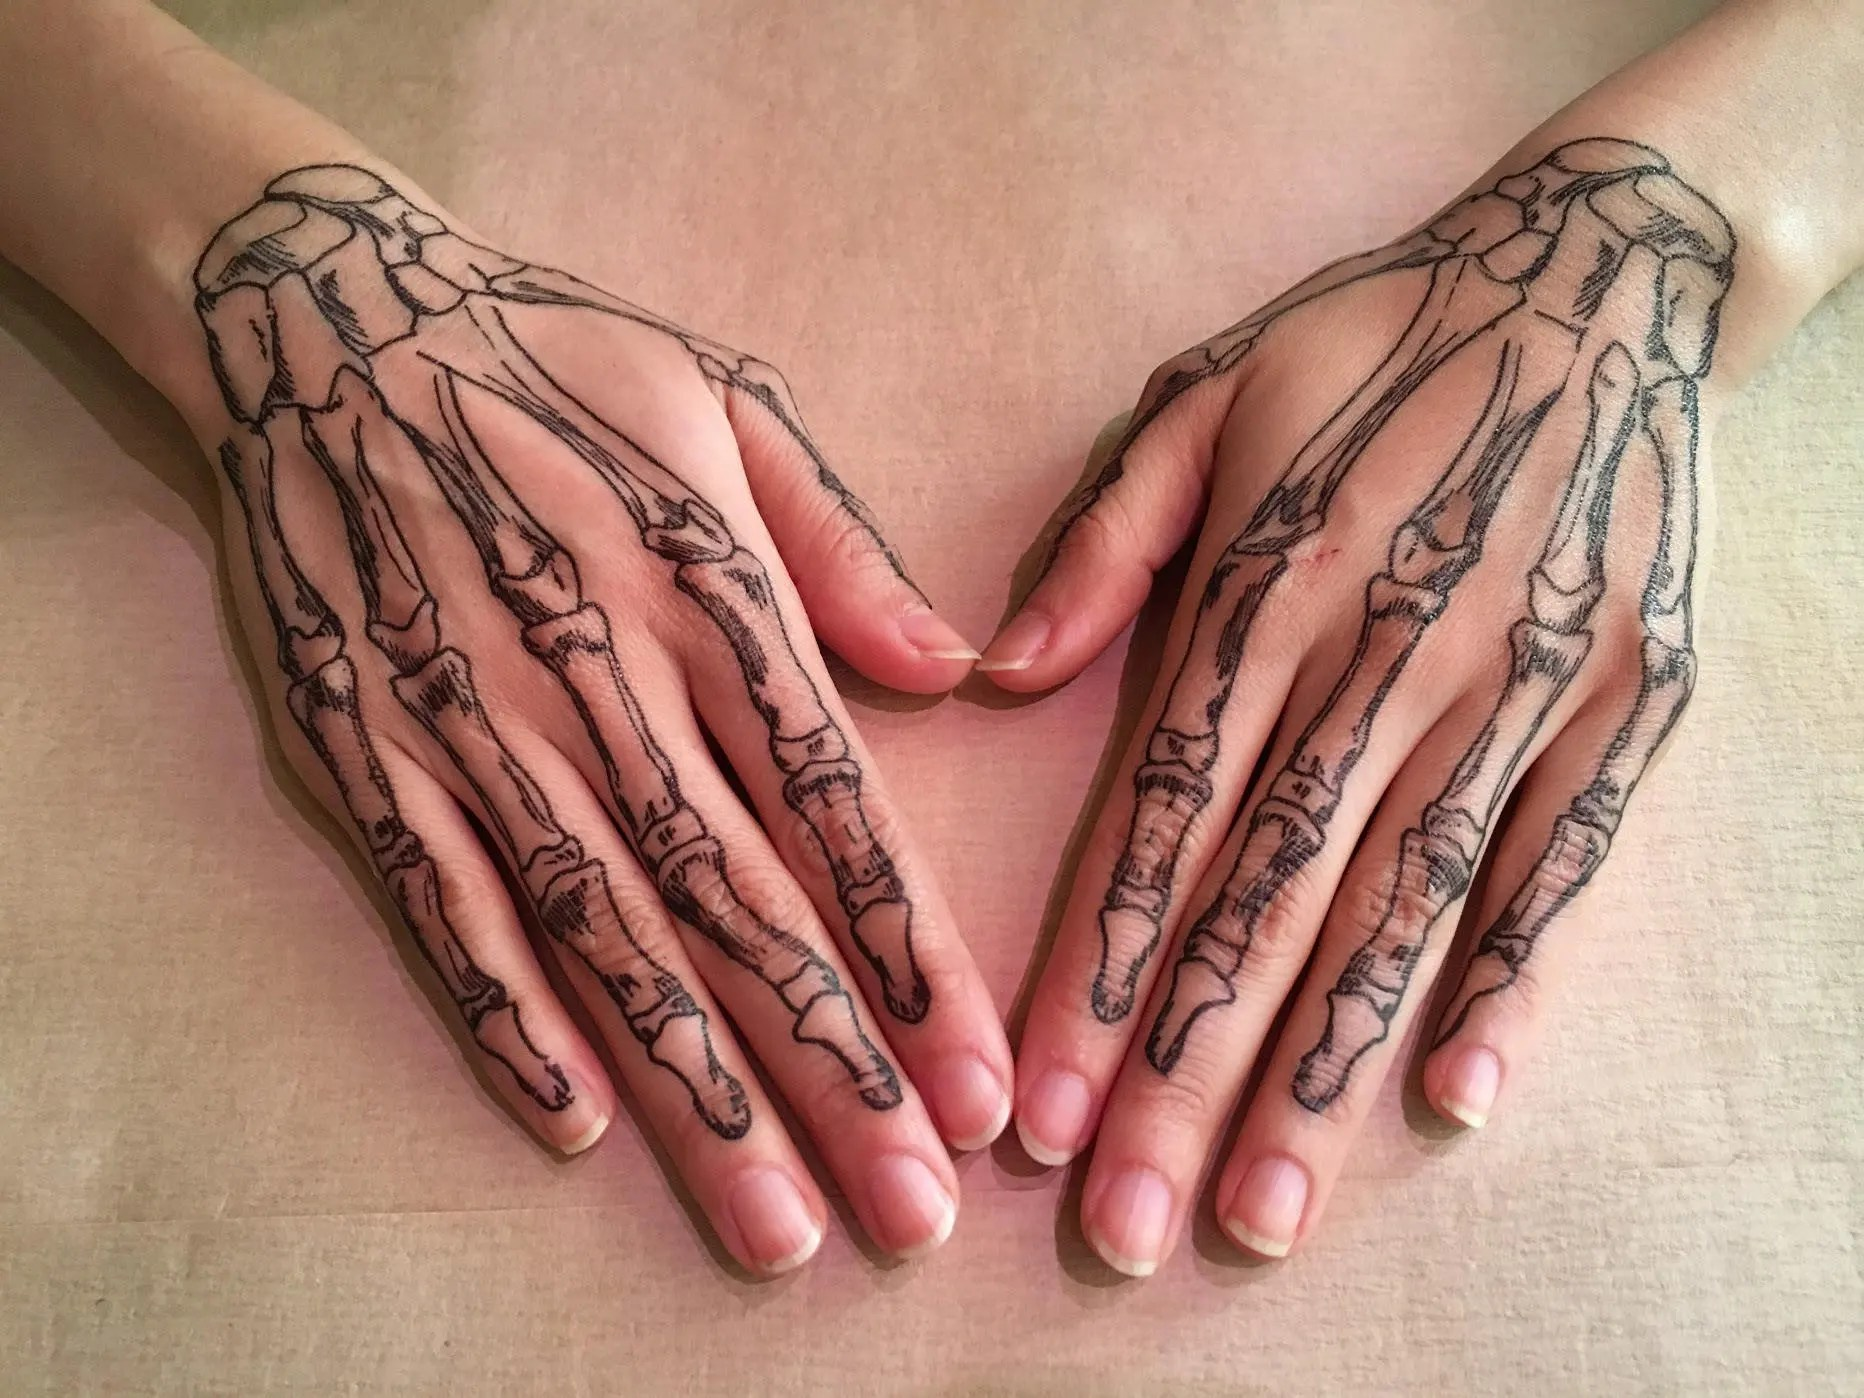 Coco Skeleton hands temporary tattoos for cosplay. Skull